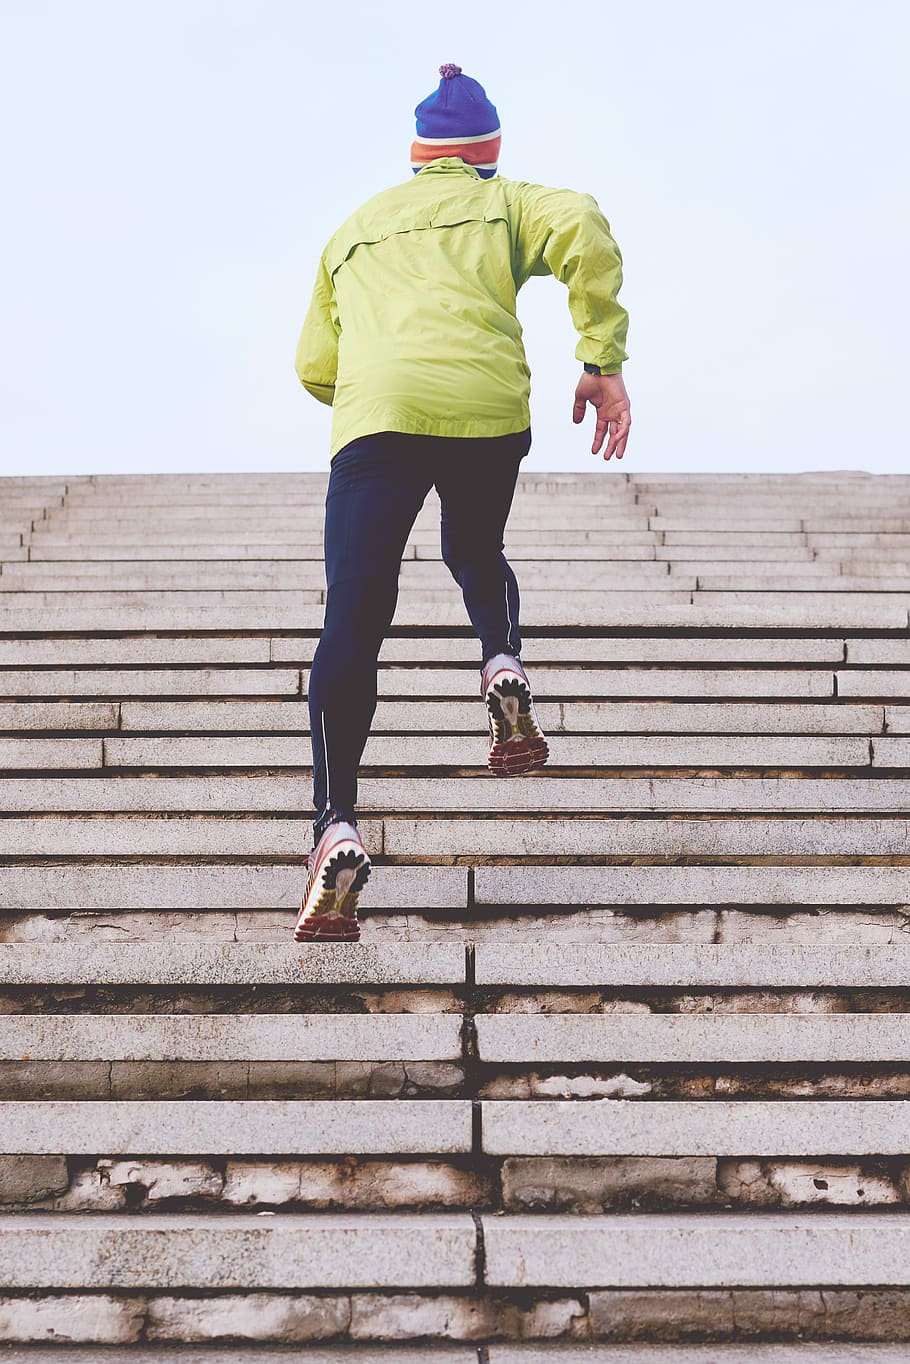 person climbing concrete stairs, man wearing green jacket climbing on stairs HD wallpaper